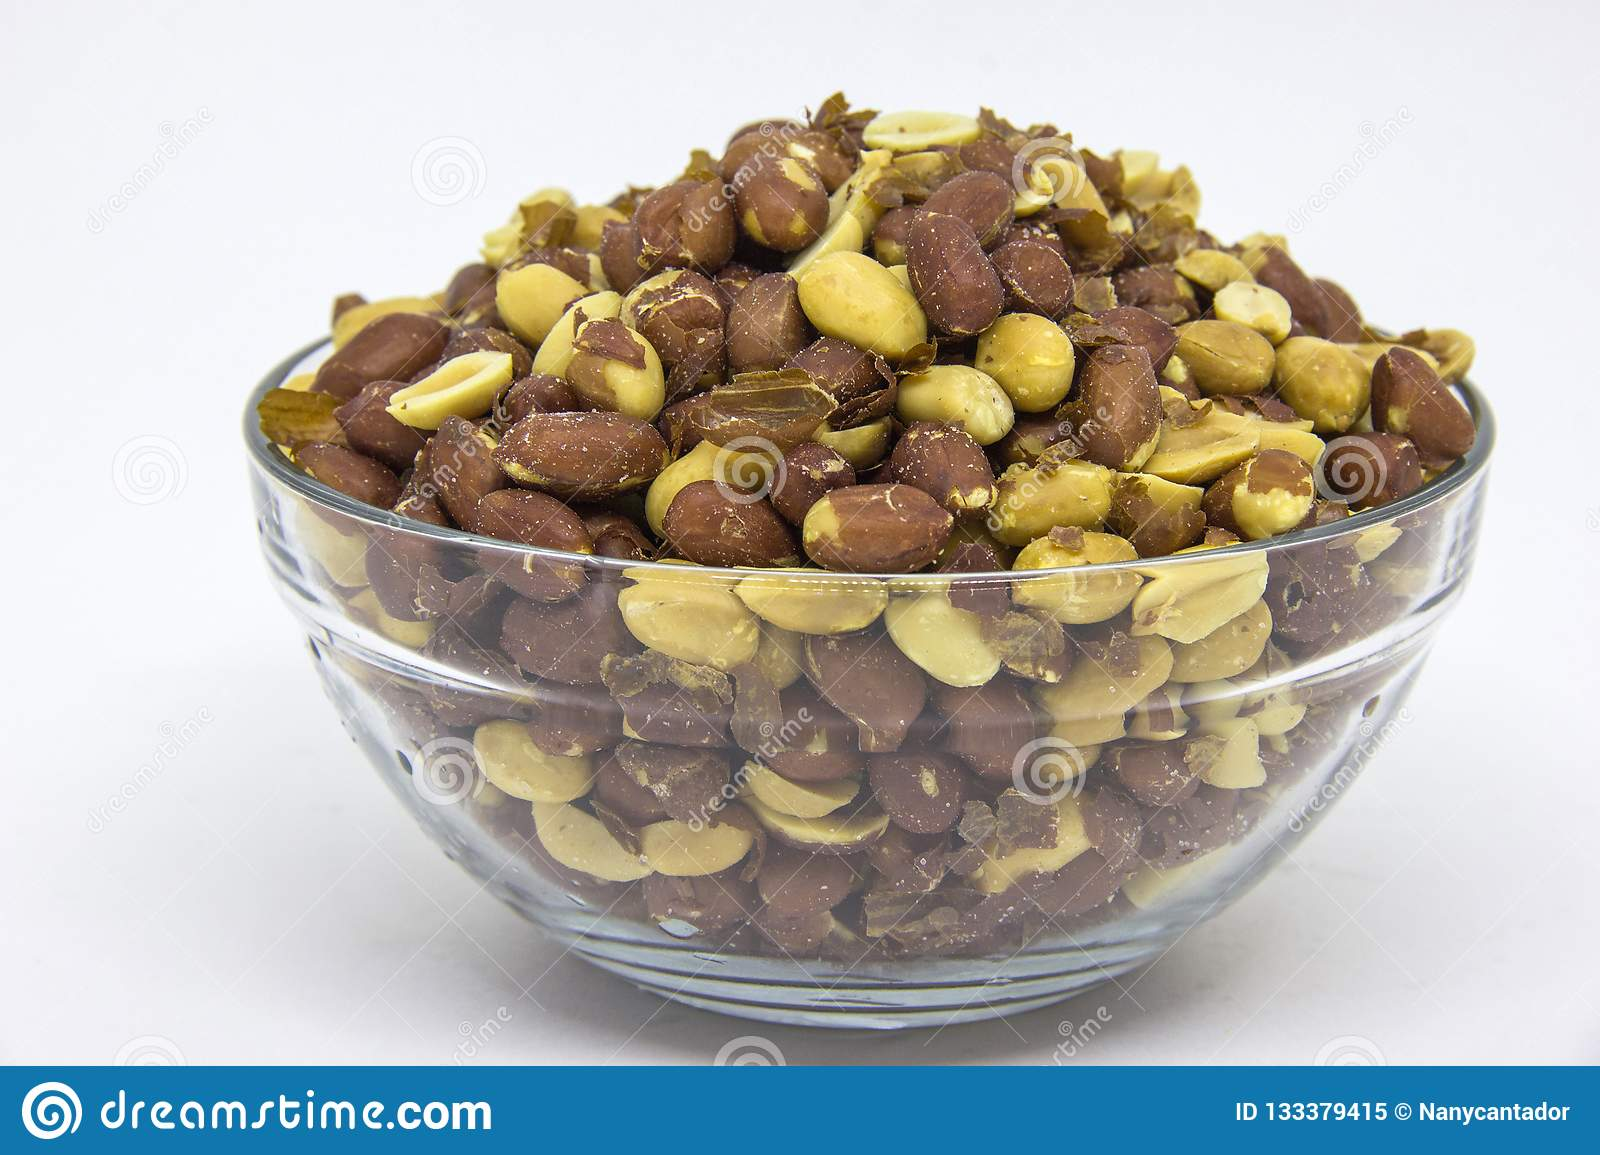 Roasted peanuts in glass bowl on white background